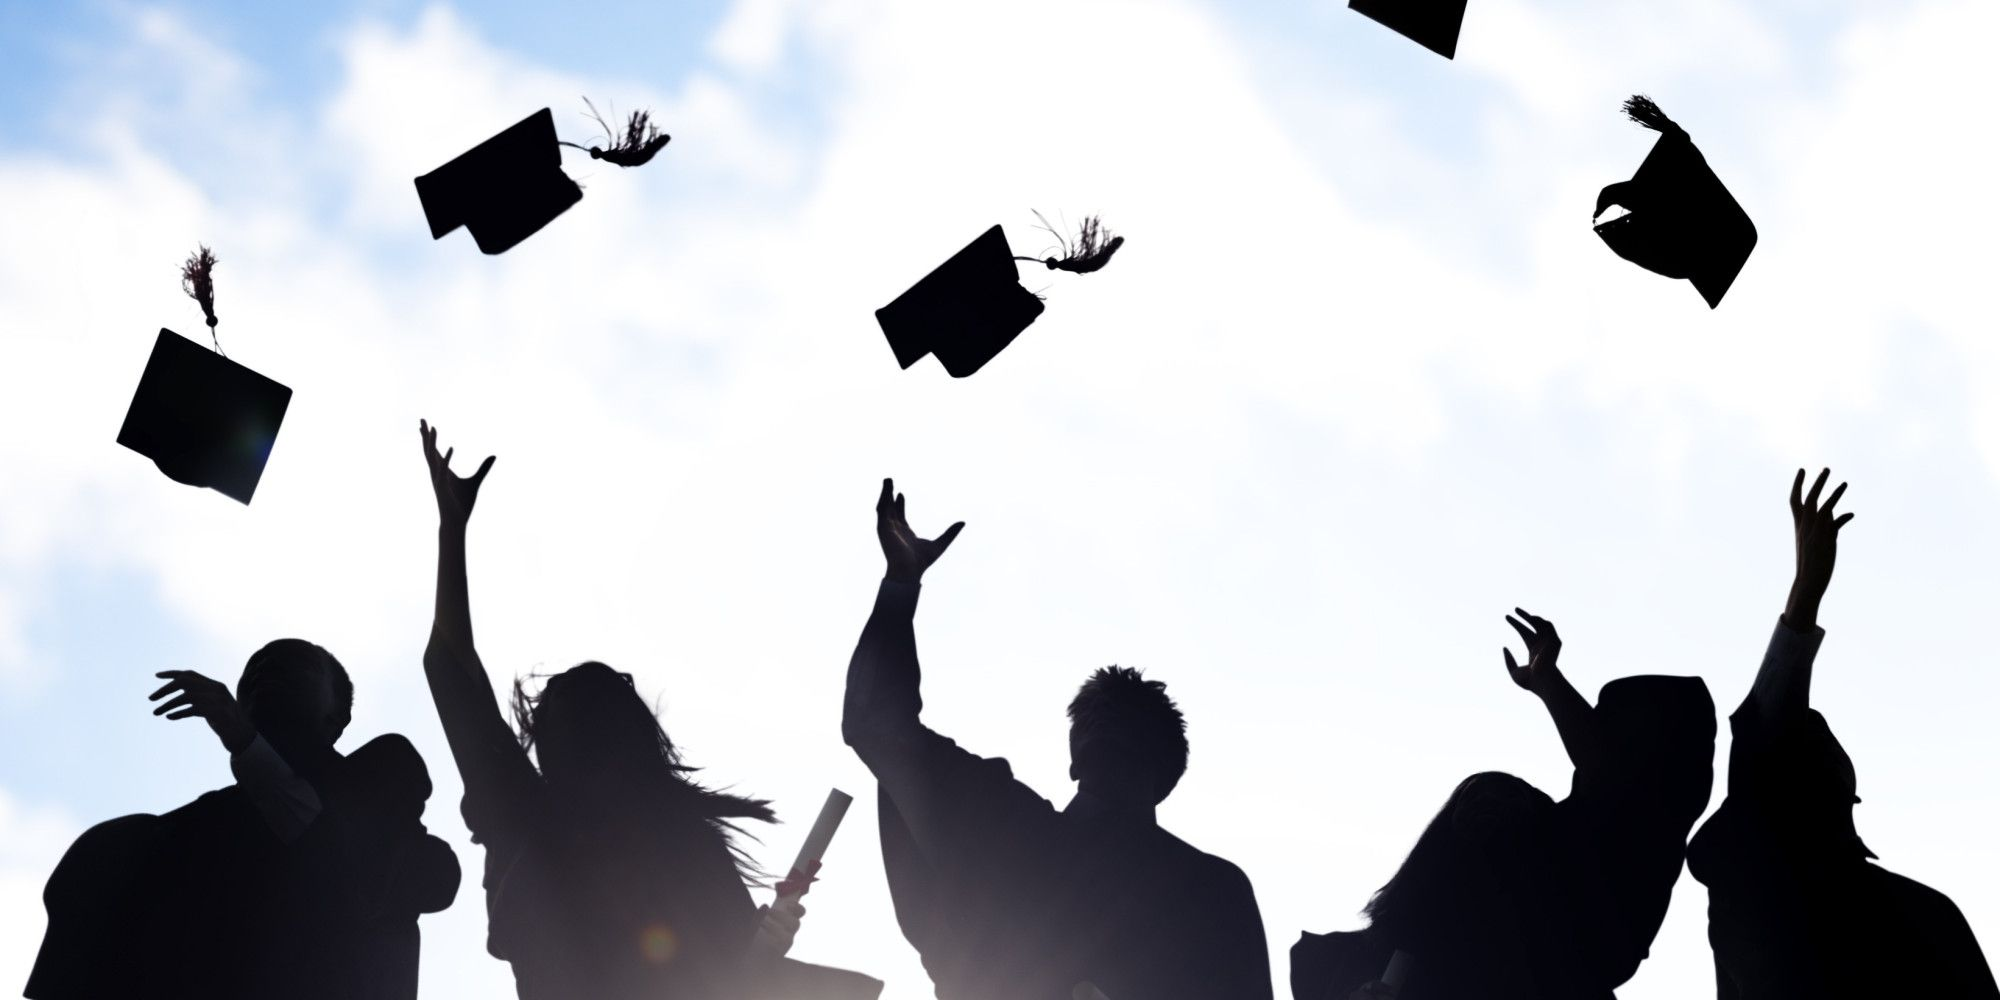 2000x1000 School Graduation Wallpapers High Quality | Download Free